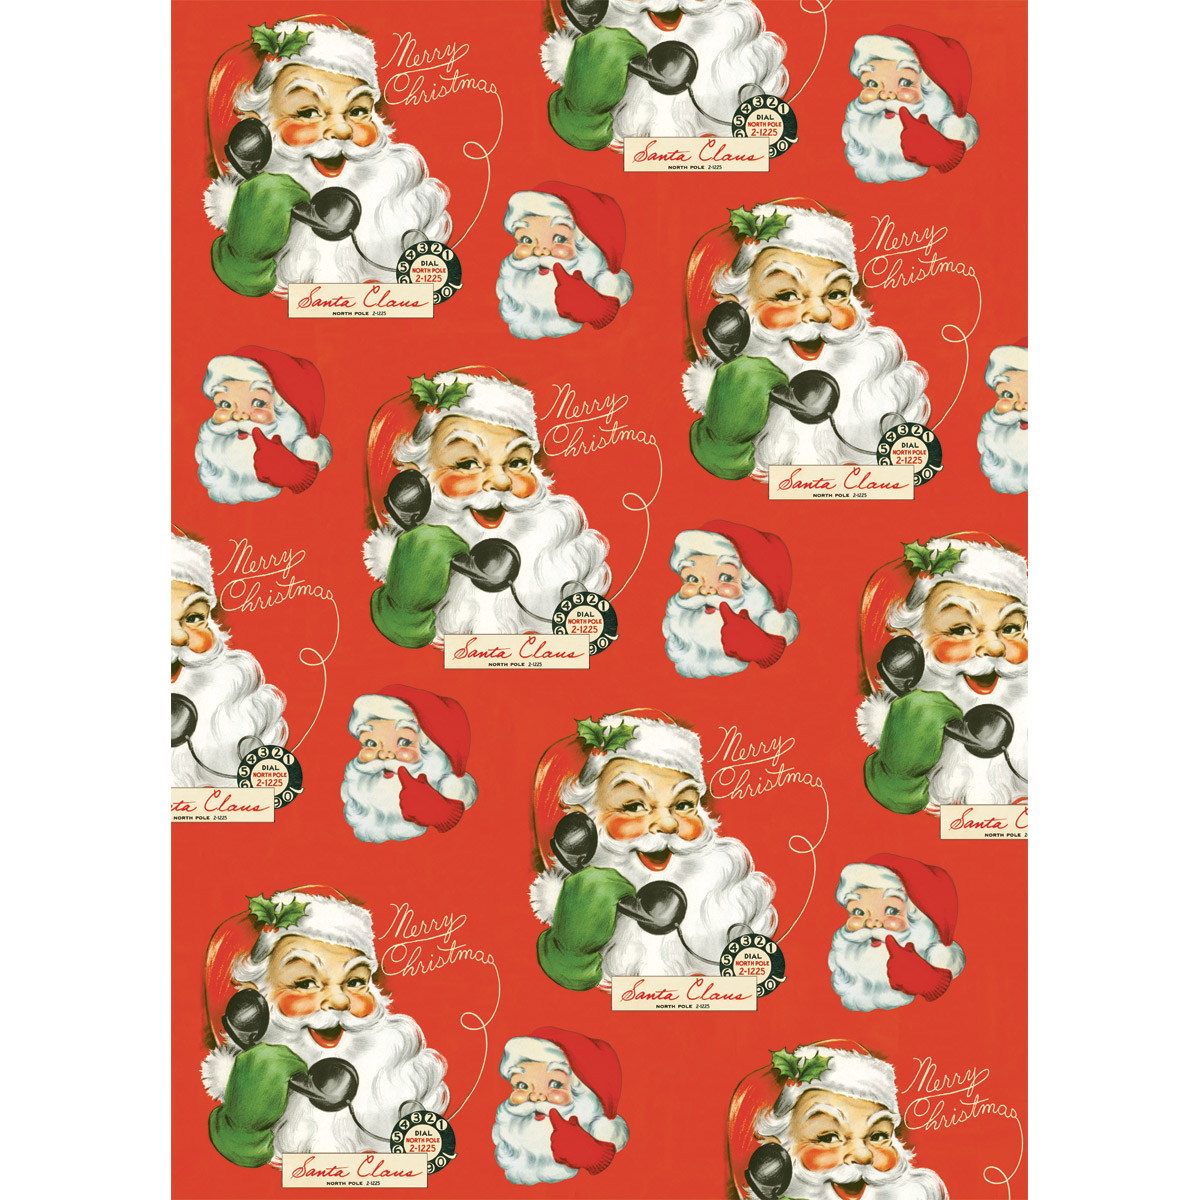 Hello Santa Christmas Wrapping Paper Sheet